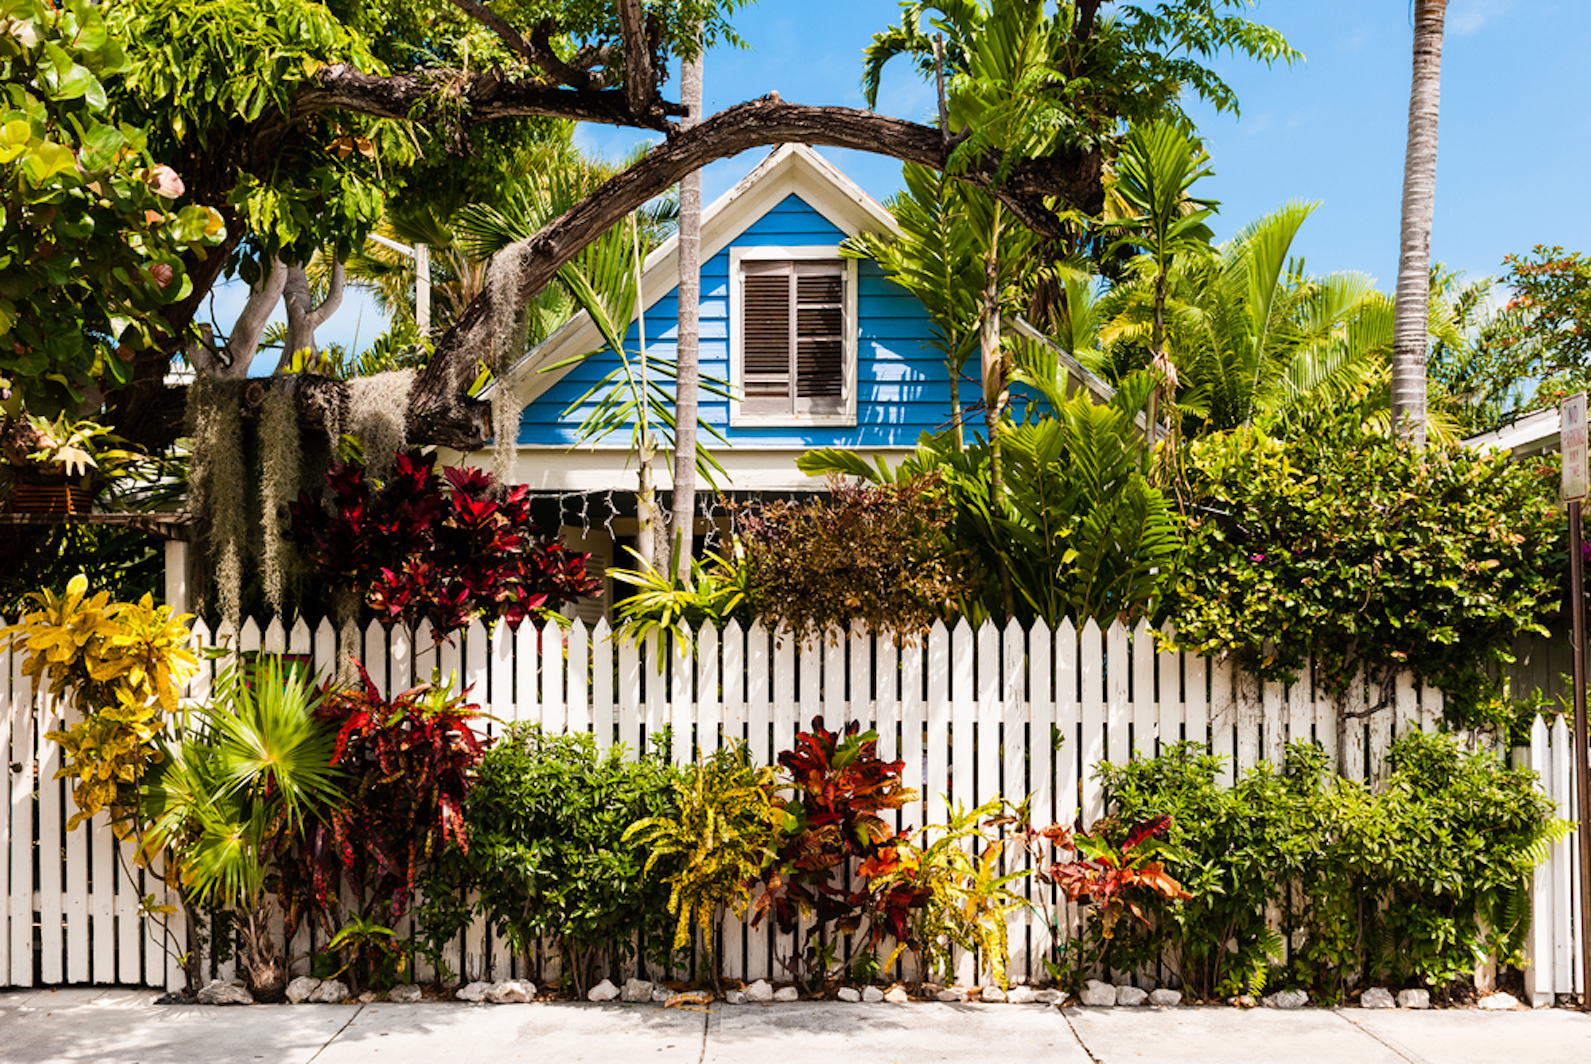 24 Things You Can't Miss in Key West, Part 2